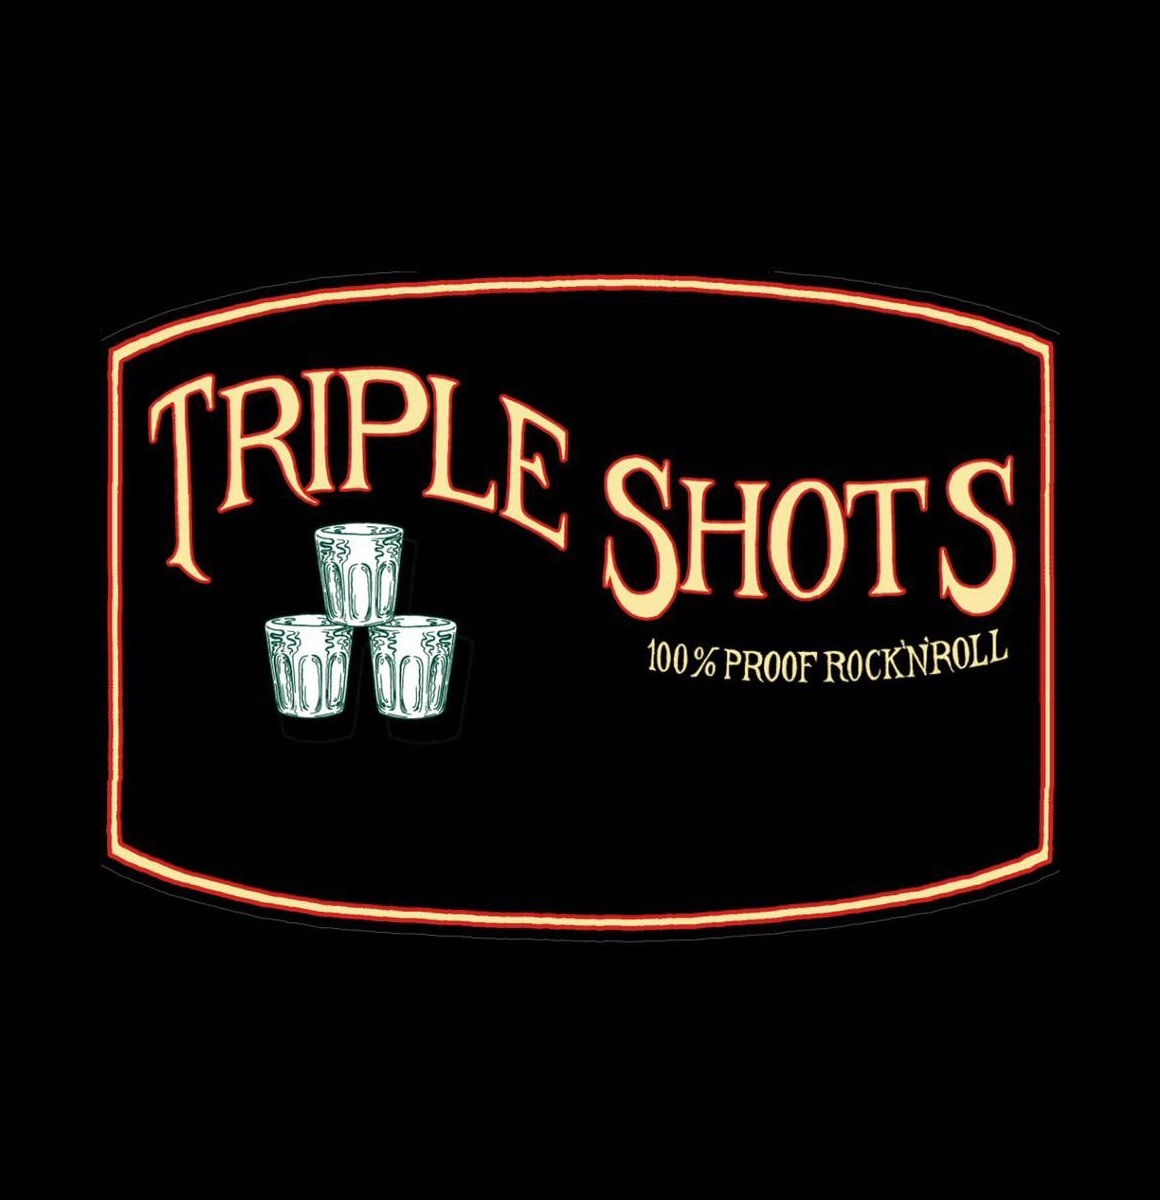 The Triple Shots